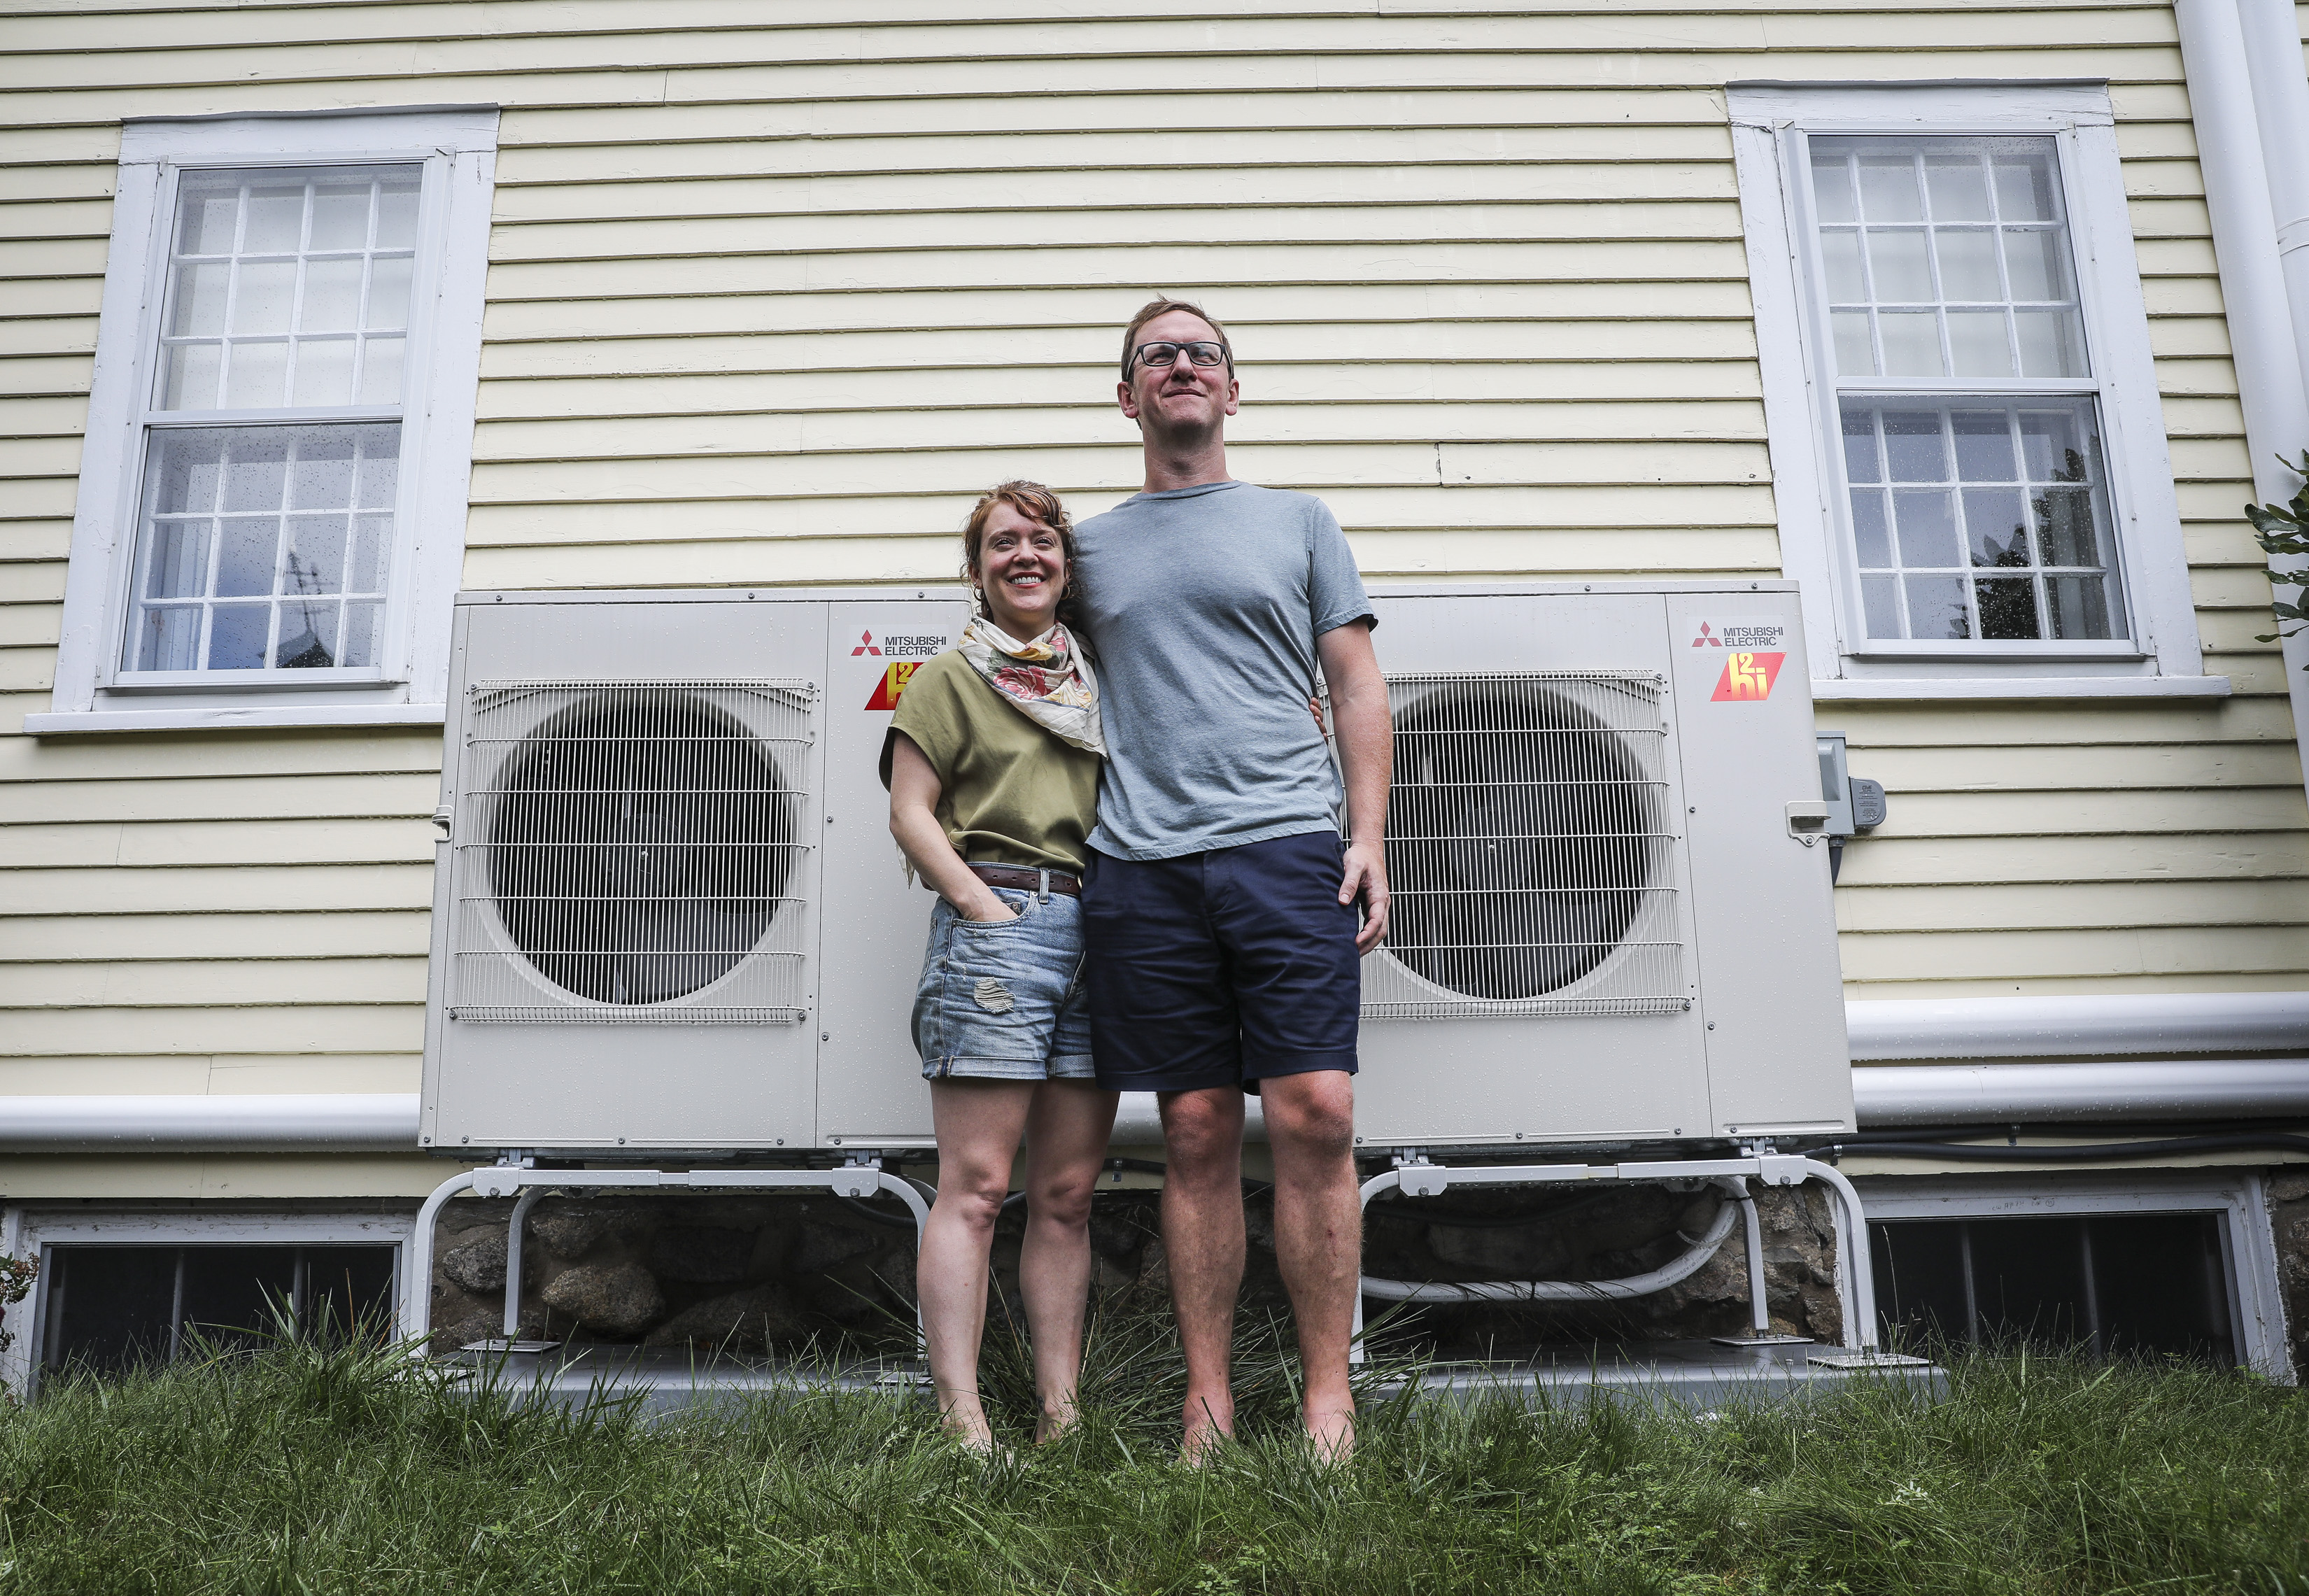 Ben Butterworth and his wife, Olivia Cerf, stood by the heat pumps they had installed at their Melrose home. Butterworth said that out the five contractors he spoke with, only one was comfortable fully converting his oil-burning heating system to heat pumps.